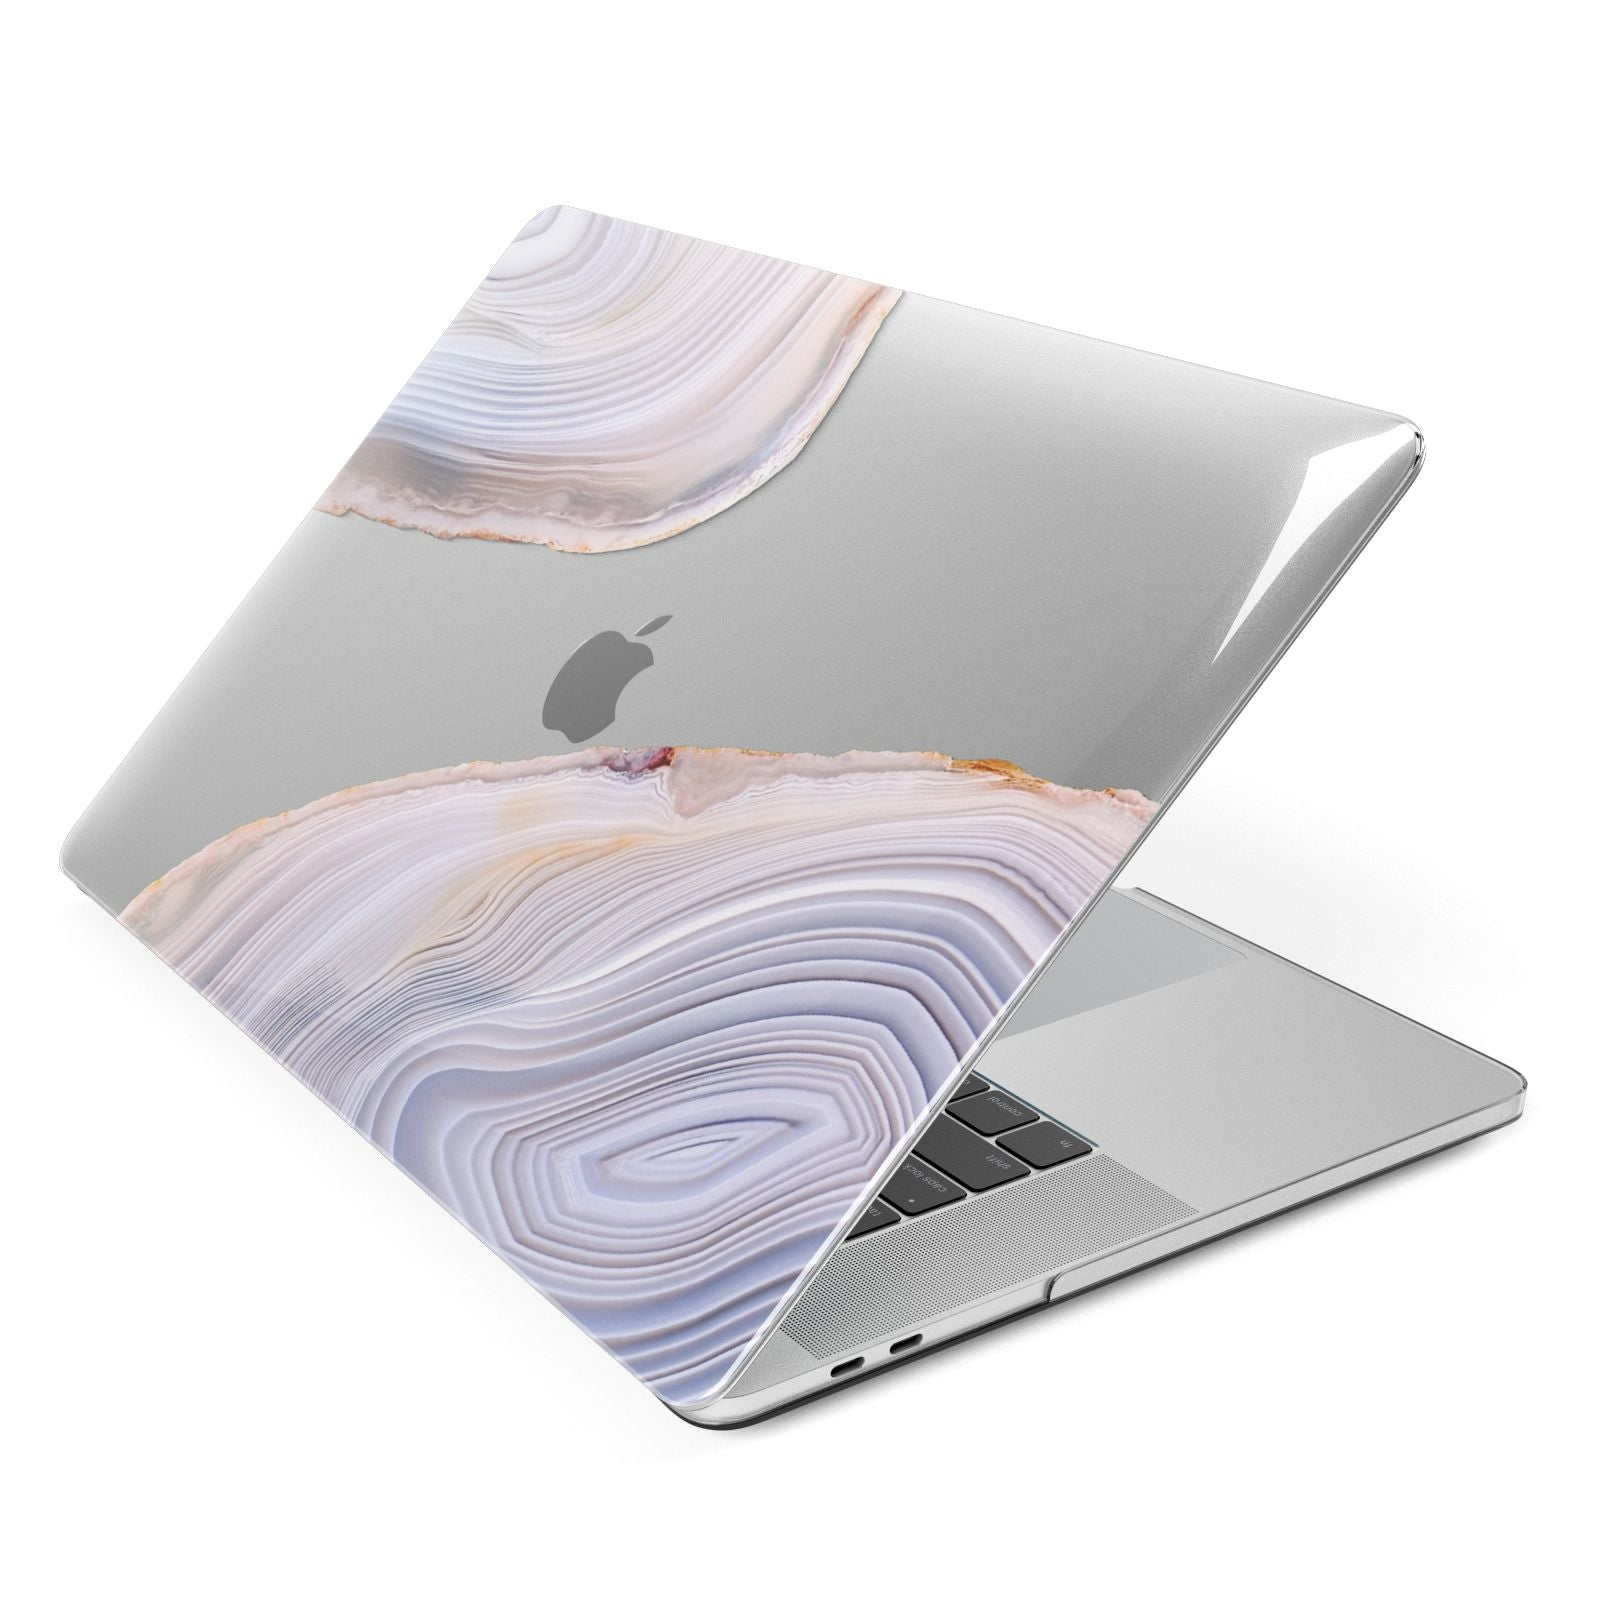 Agate Pale Pink and Blue Apple MacBook Case Side View